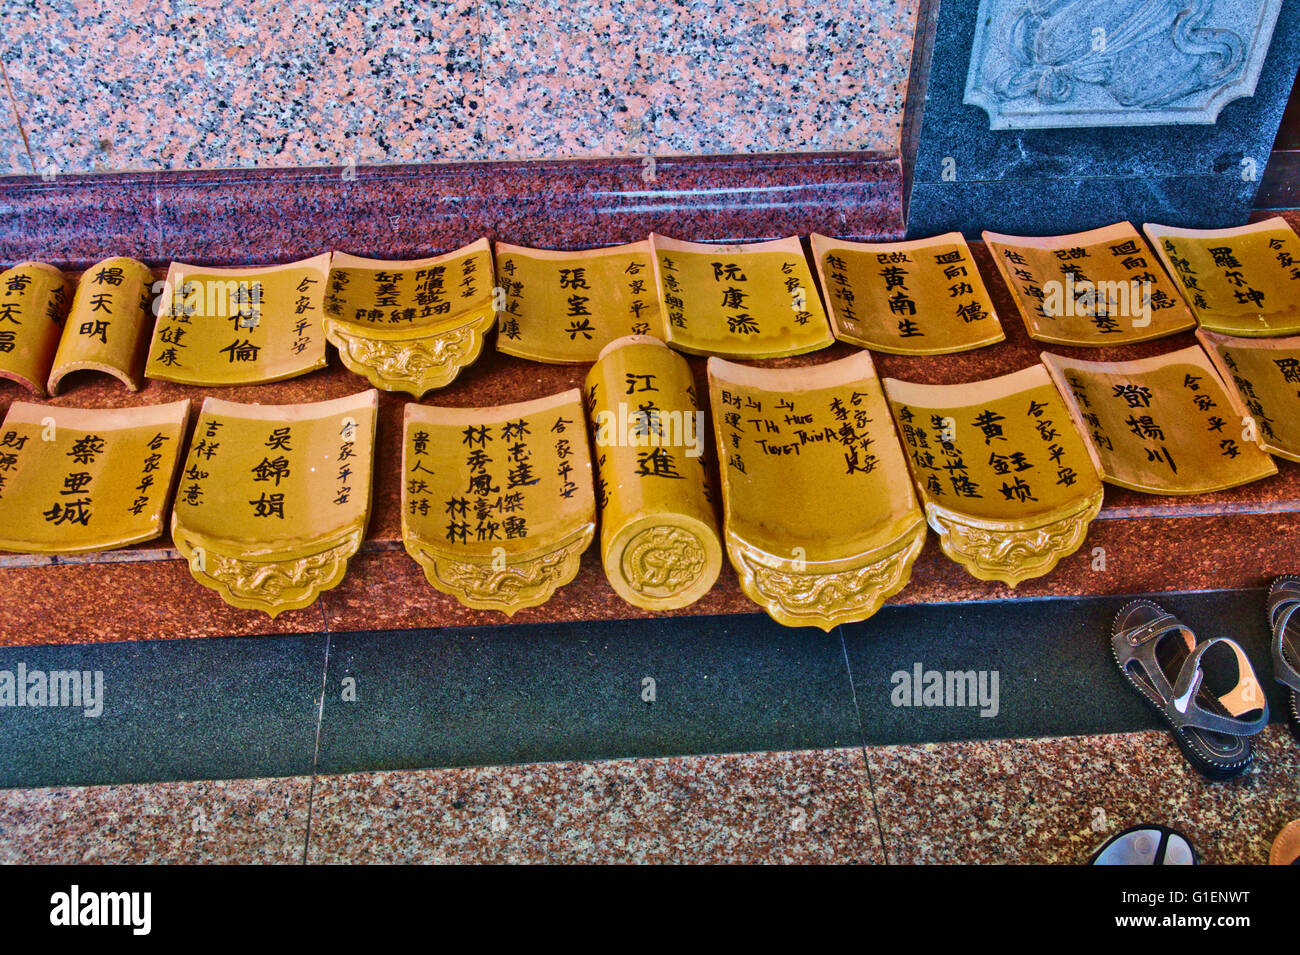 Buddhist artifacms on display during Chinese New Year celebrations at Kek Lok Si Temple in Penang, Malaysia on Friday - Stock Image